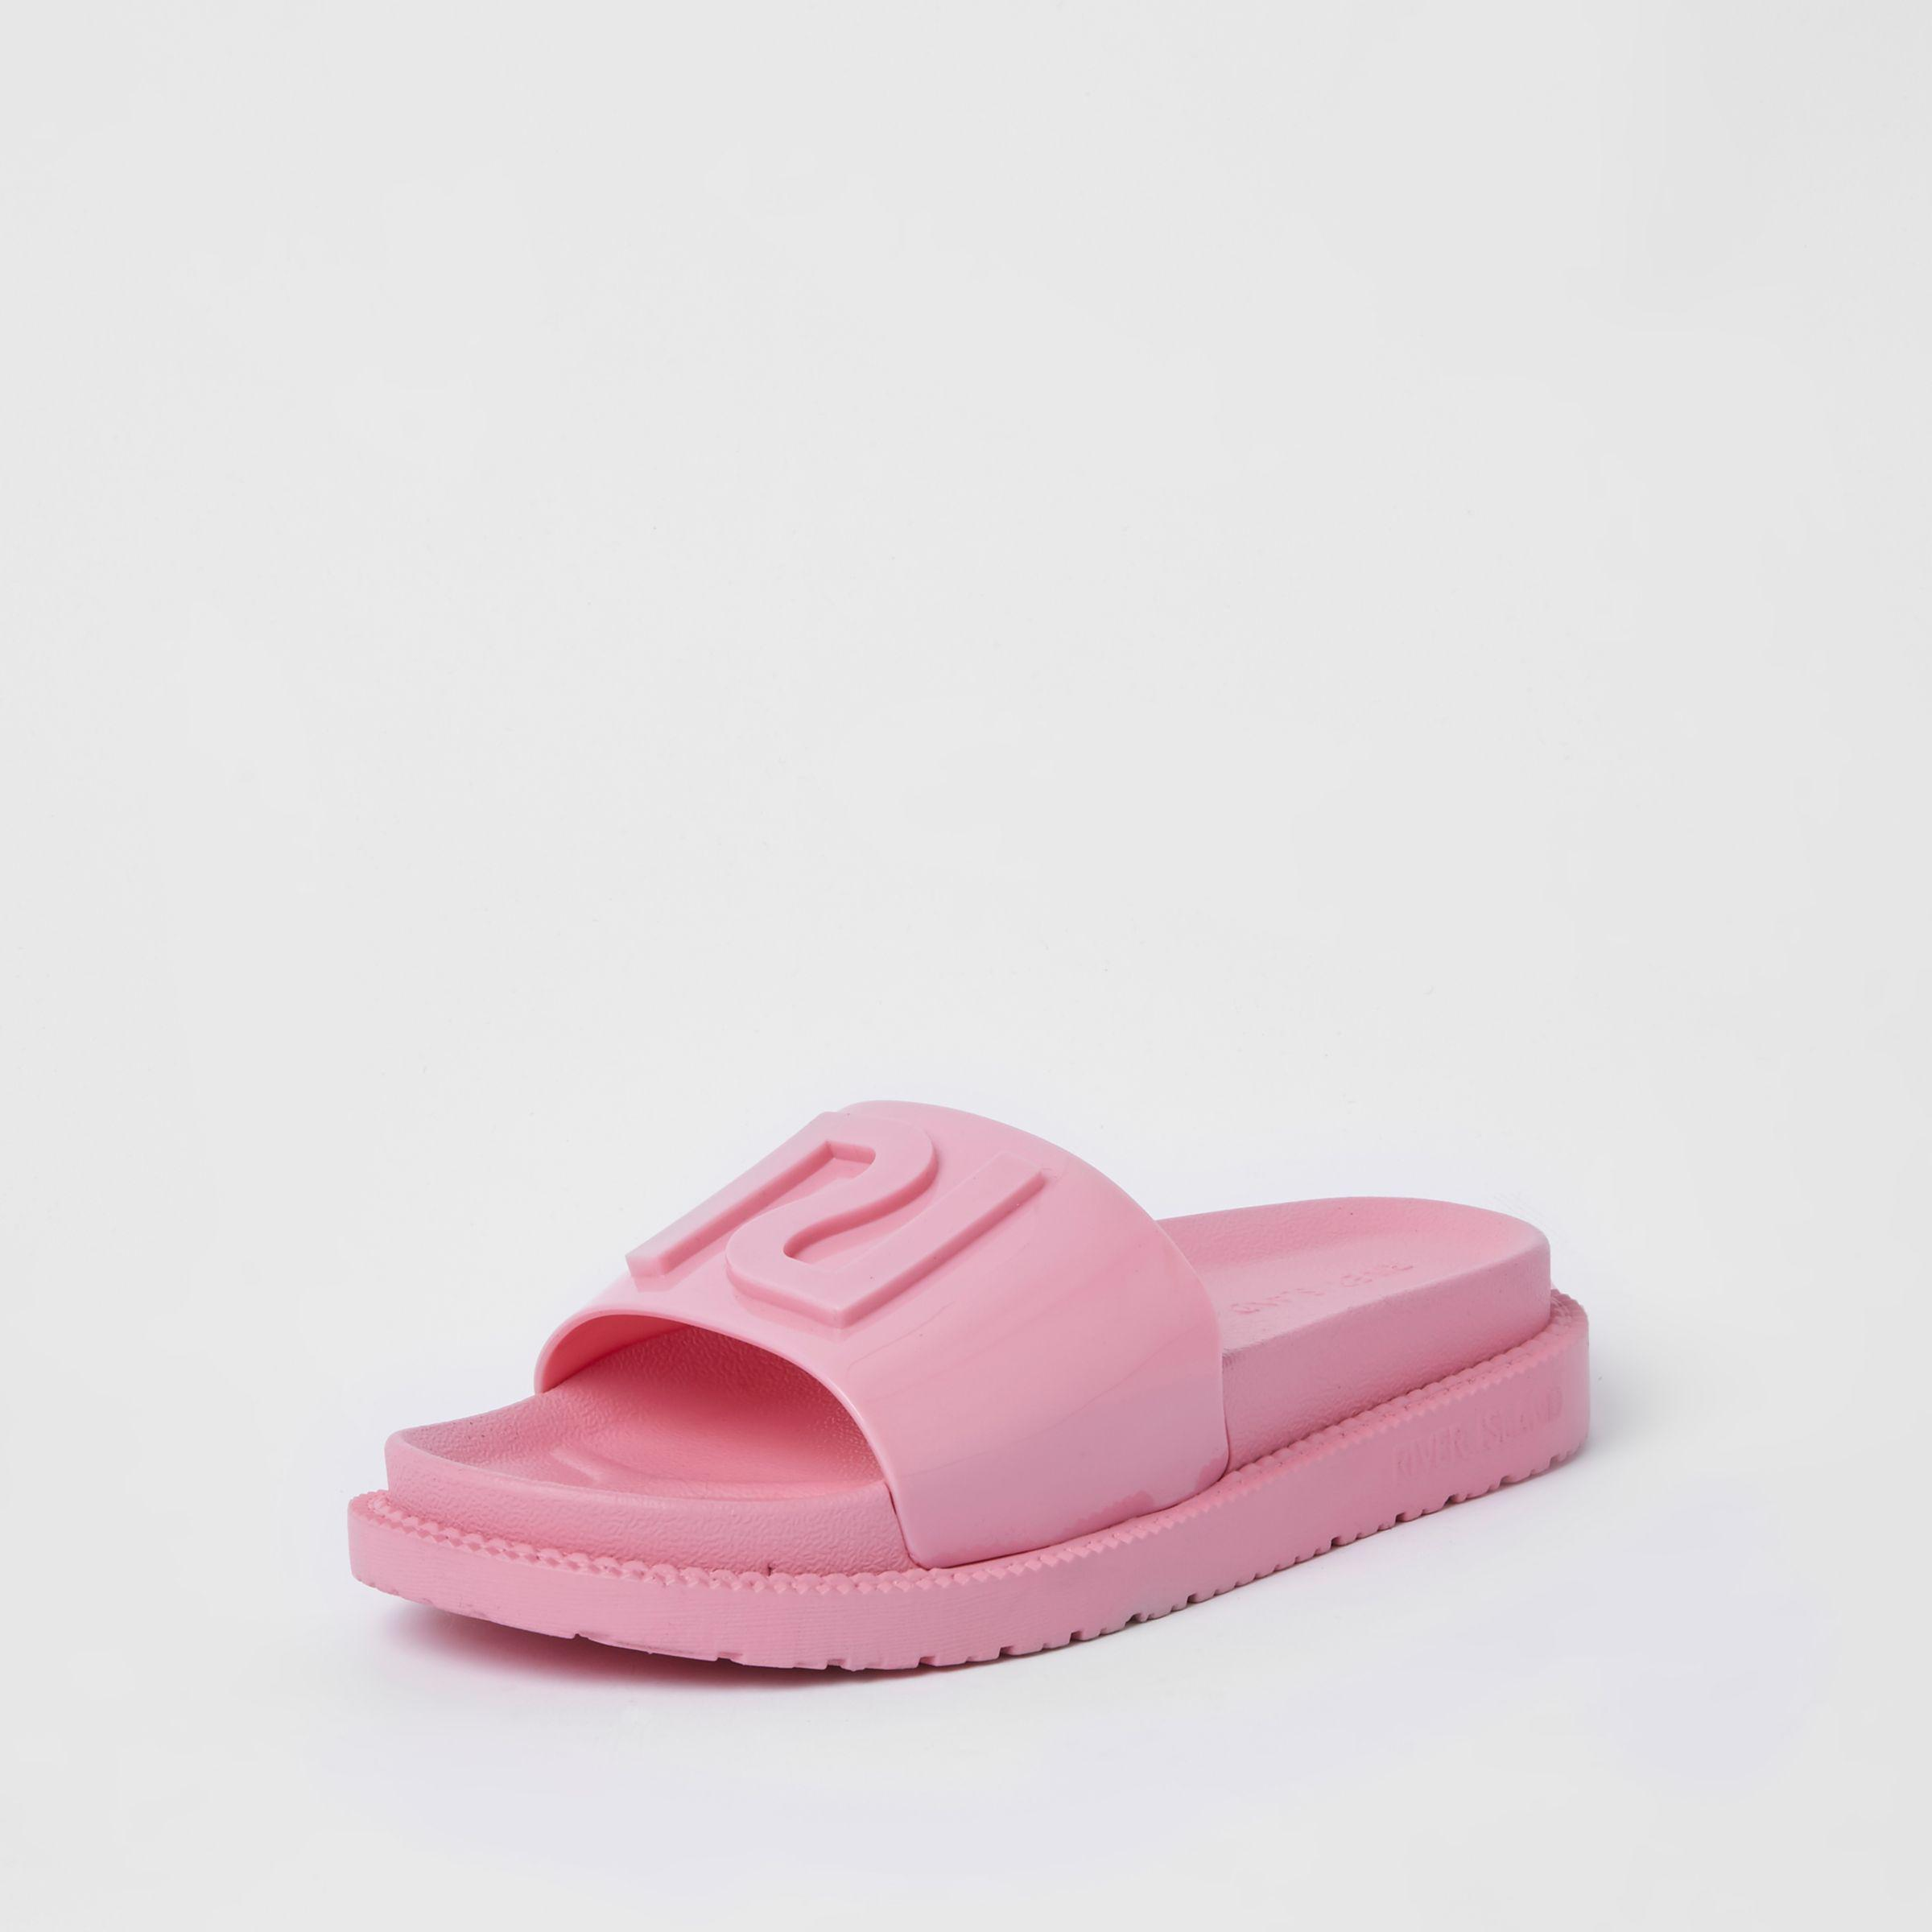 a8bc195cc0af Lyst - River Island Pink Ri Branded Jelly Sliders in Pink